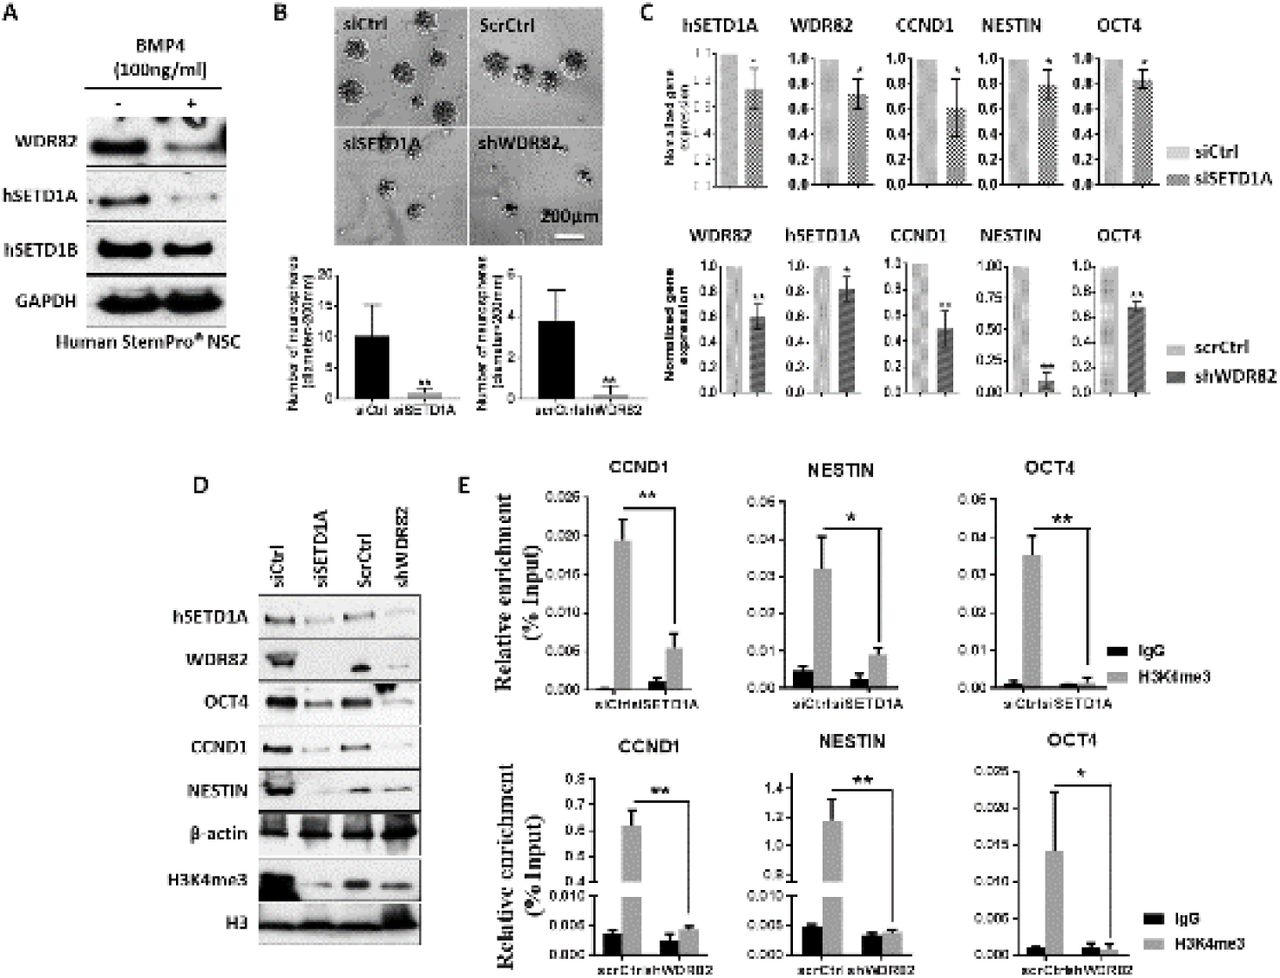 BMP4 reduces global H3K4me3 promoter occupancy through reduction of its methyltransferases WDR82 and hSETD1A. A. Western blots shows WDR82 and human SETD1A/B expression following 100ng/ml BMP4 treatment. B. Representative images and quantitative graphs showing sphere formation in human StemPro® NSCs following treatment with siRNA for hSETD1A (siSETD1A) or shRNA for WDR82 (shWDR82) vectors versus controls (control siRNA, siCtrl and scrambled shRNA, scrCtrl). C and D. Real-time PCR (C) and western blots (D) showing expression of hSETD1A, WDR82, OCT4, CCND1 and NESTIN, following treatments as in B. E. Real-time PCR using DNA from ChIP with rabbit IgG and H3K4me3 and detected with promoter primers for OCT4, CCND1 and NESTIN following treatment with siSETD1A, shWDR82 or siCtrl, scrCtrl, in StemPro® NSCs. Error bars show the standard error of three independent experiments. (* p